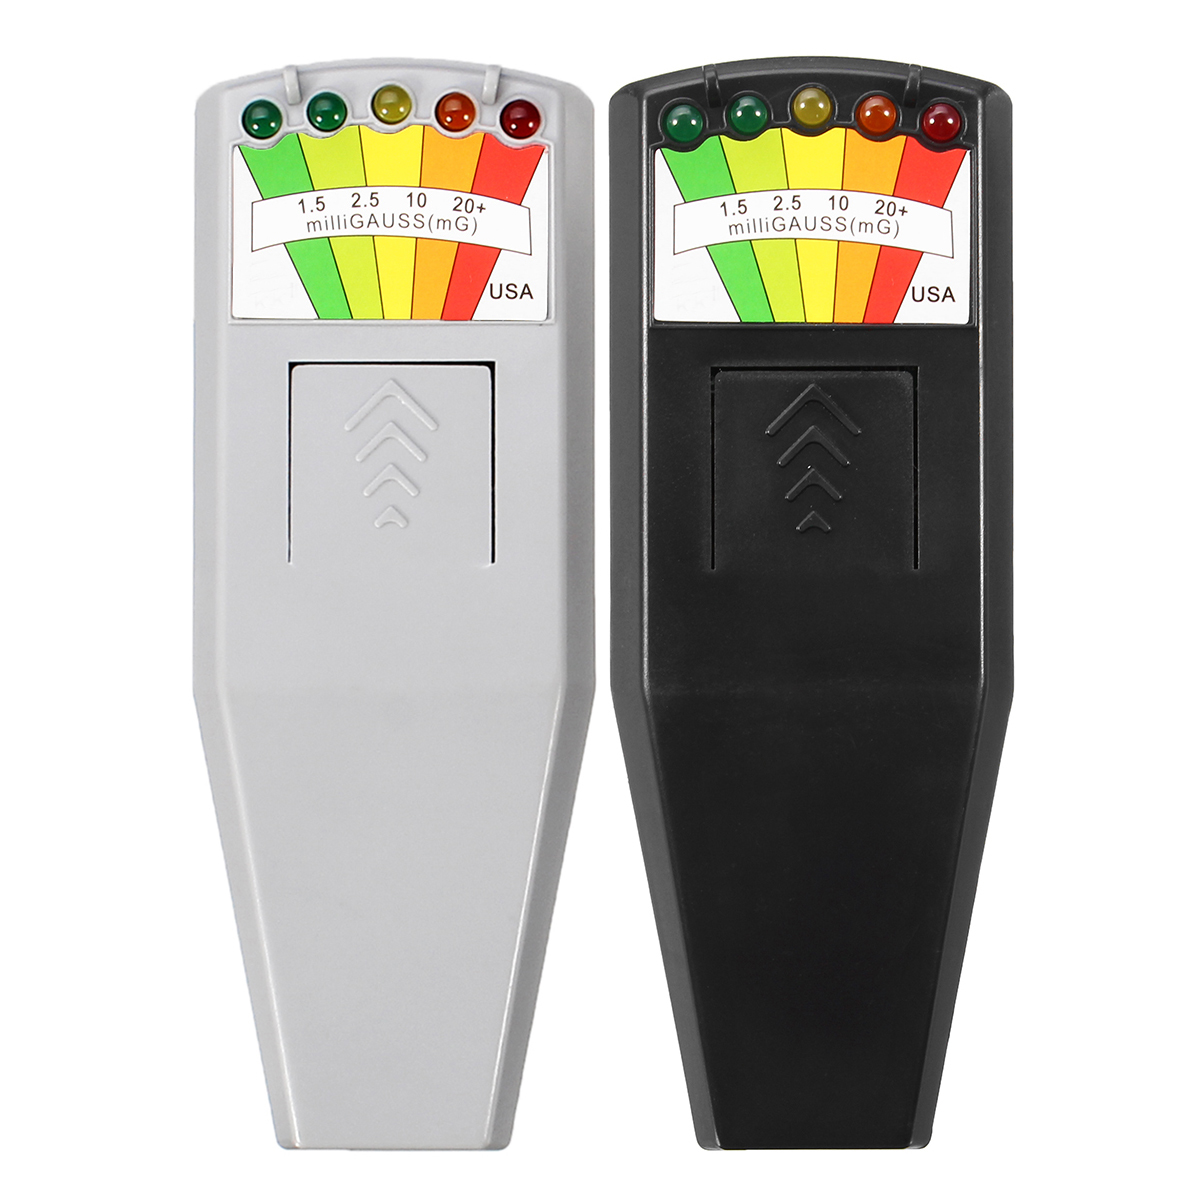 images/new-electronics/A1273240PB/emf-meter-magnetic-field-detector-ghost-hunting-paranormal-electrical-equipment-plusbuyer_99.jpg